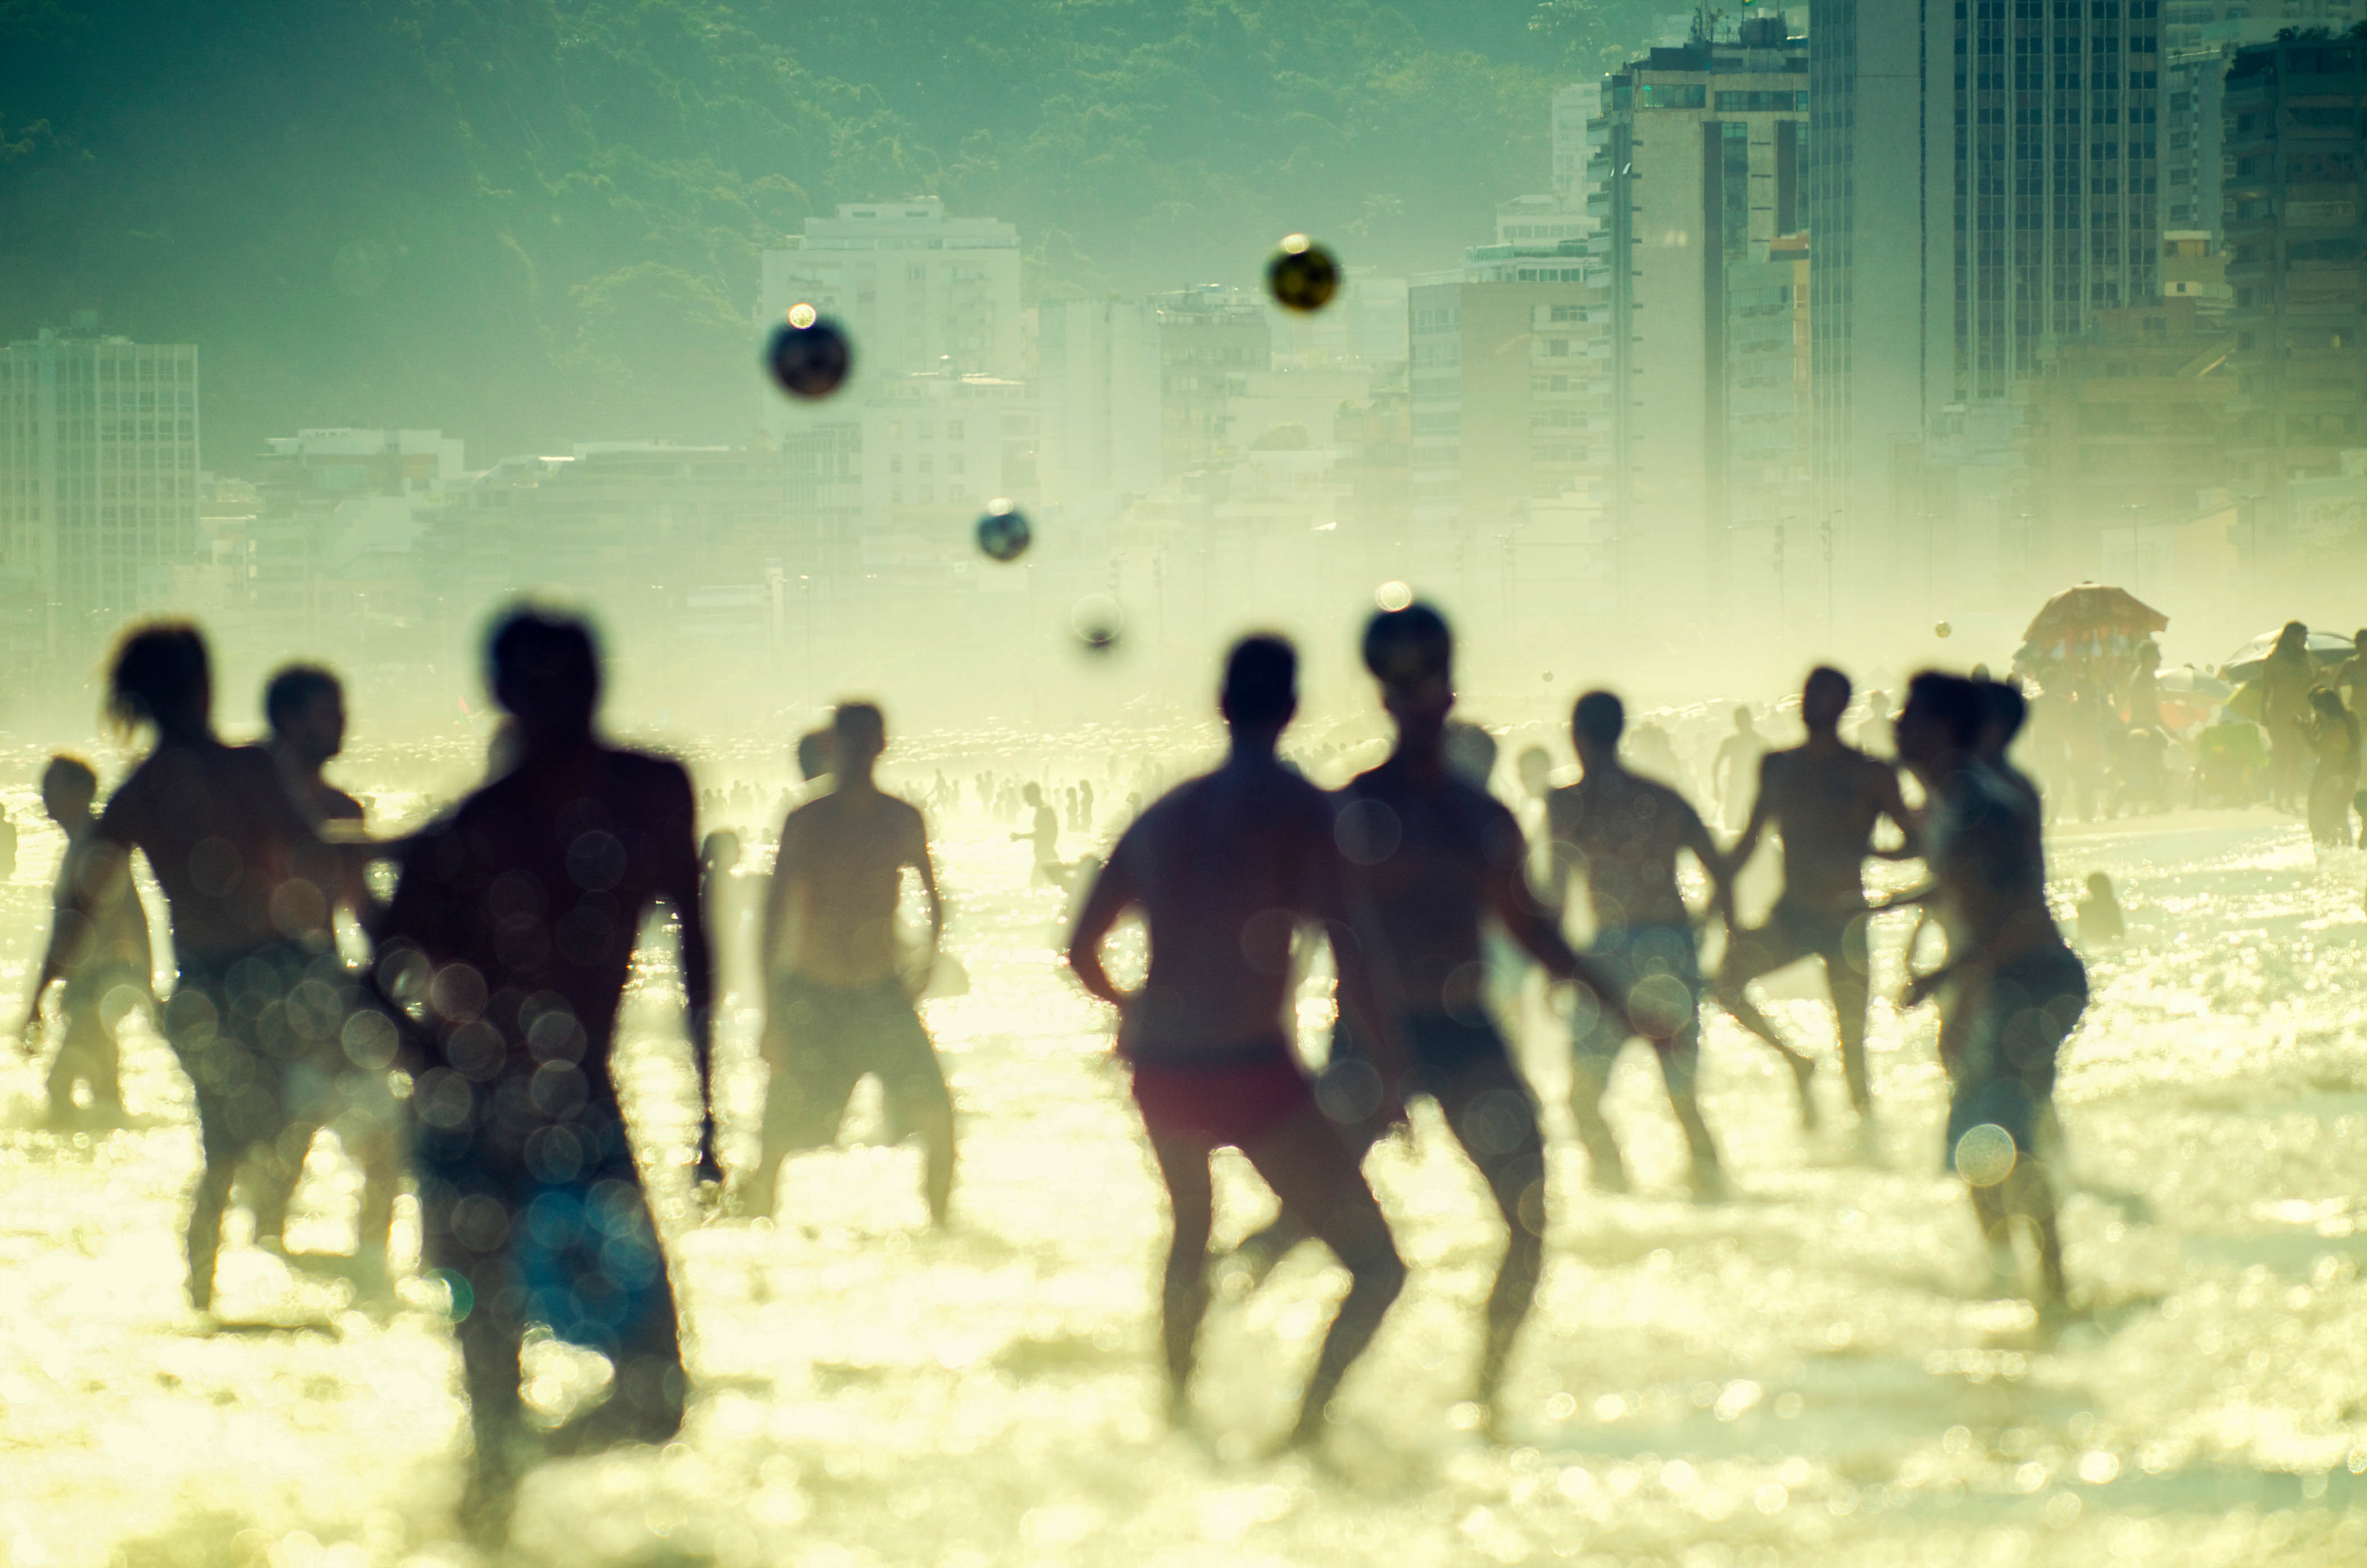 Brazilian people playing soccer football in a golden sunset afternoon at Posto Nove on Ipanema Beach Rio de Janeiro Brazil